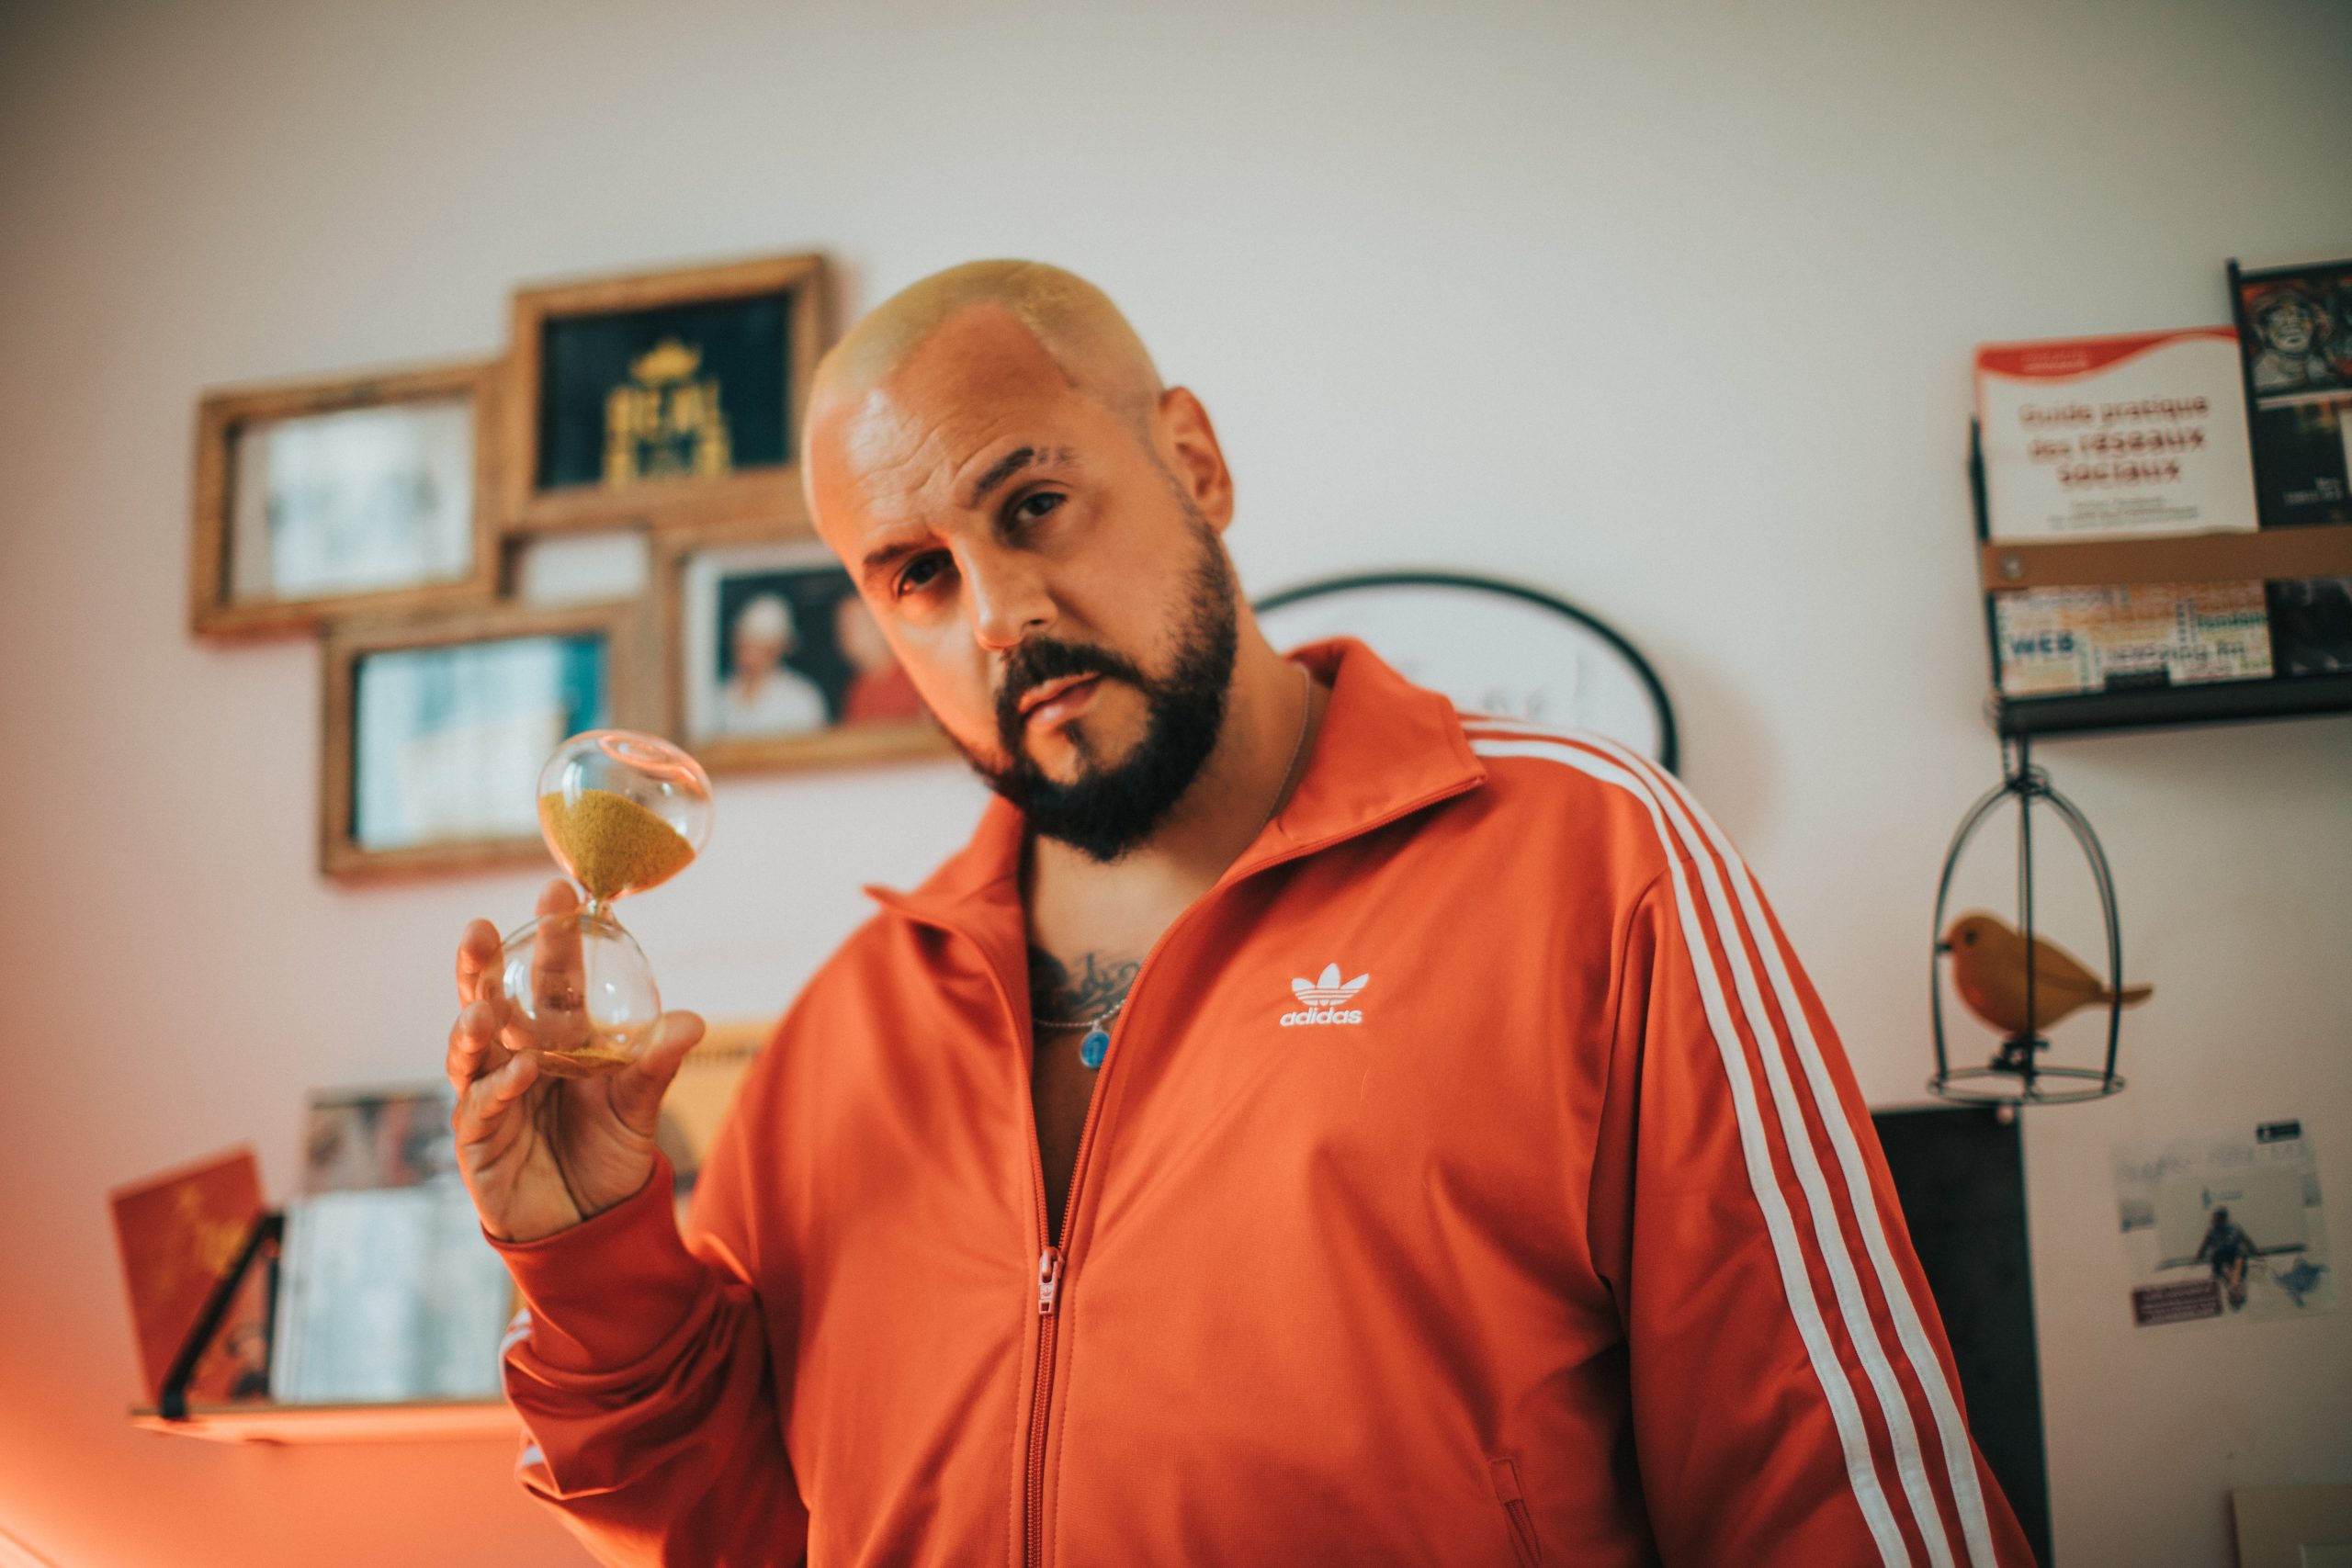 man in red adidas zip up jacket holding clear glass ball